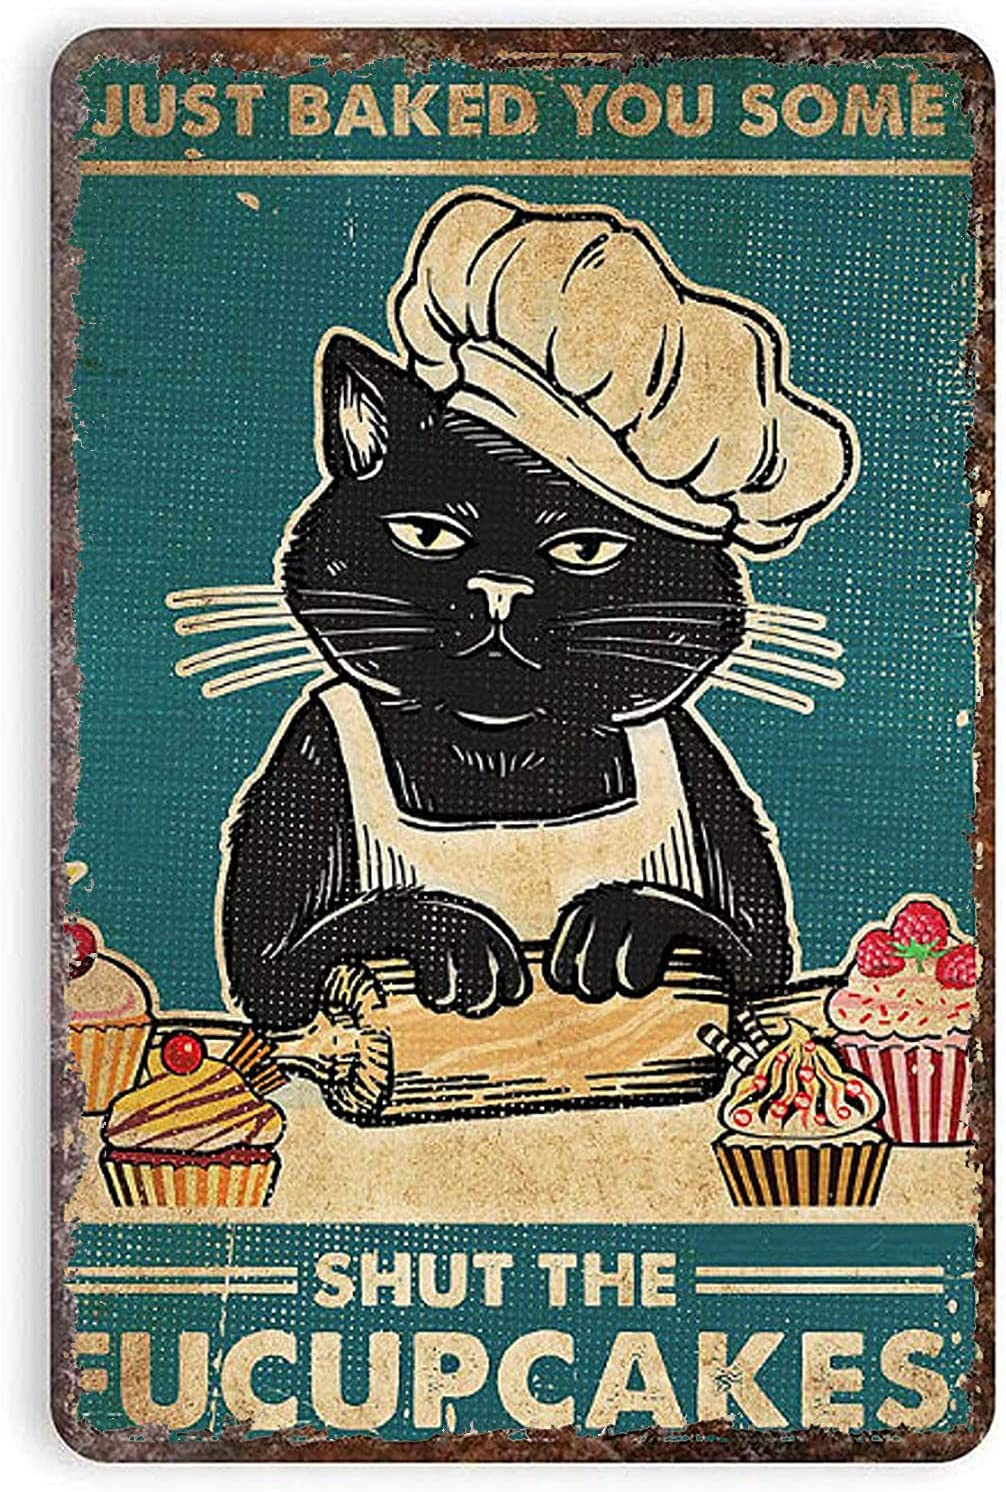 Lack Cat Kitchen Wall Decor Vintage Metal Sign I Just Baked You Some Shut The Fucupcakes Novel Baking Portrait Poster Home Kitchen Cafe Wall Decor Art Chef's Gifts 12x8 Inch